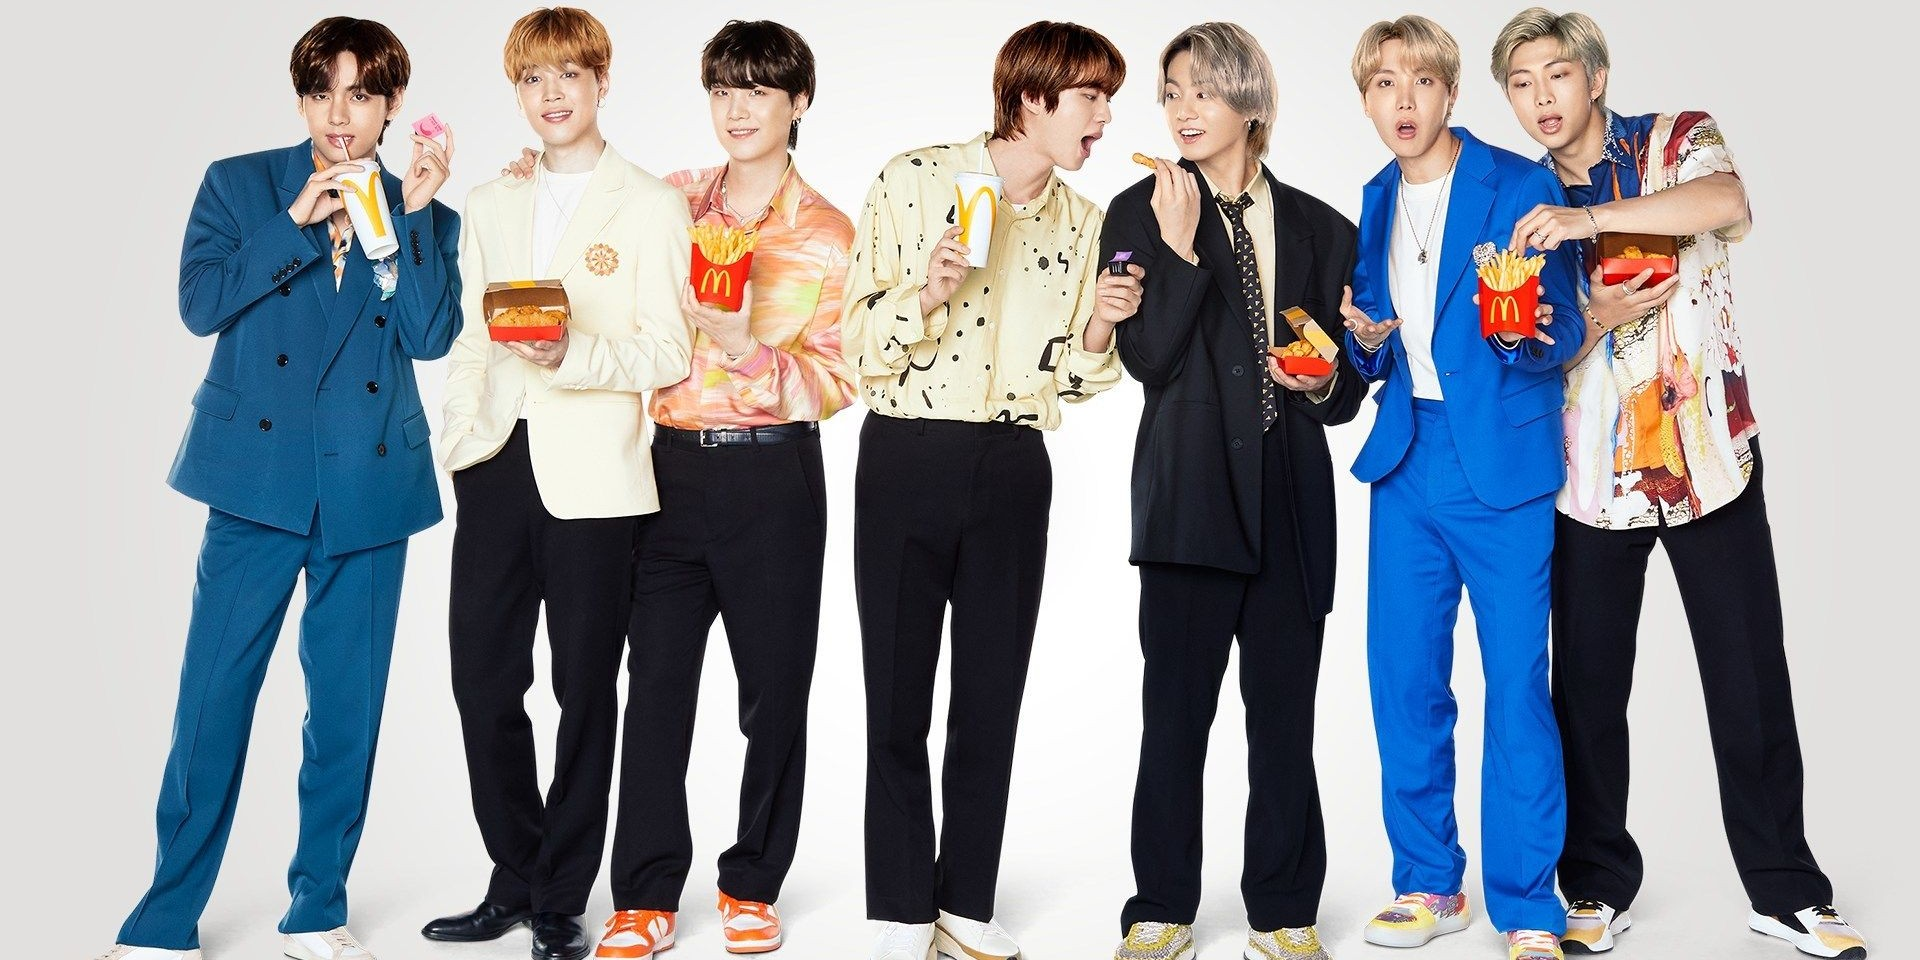 The BTS Meal is coming to the Philippines, here's what you need to know